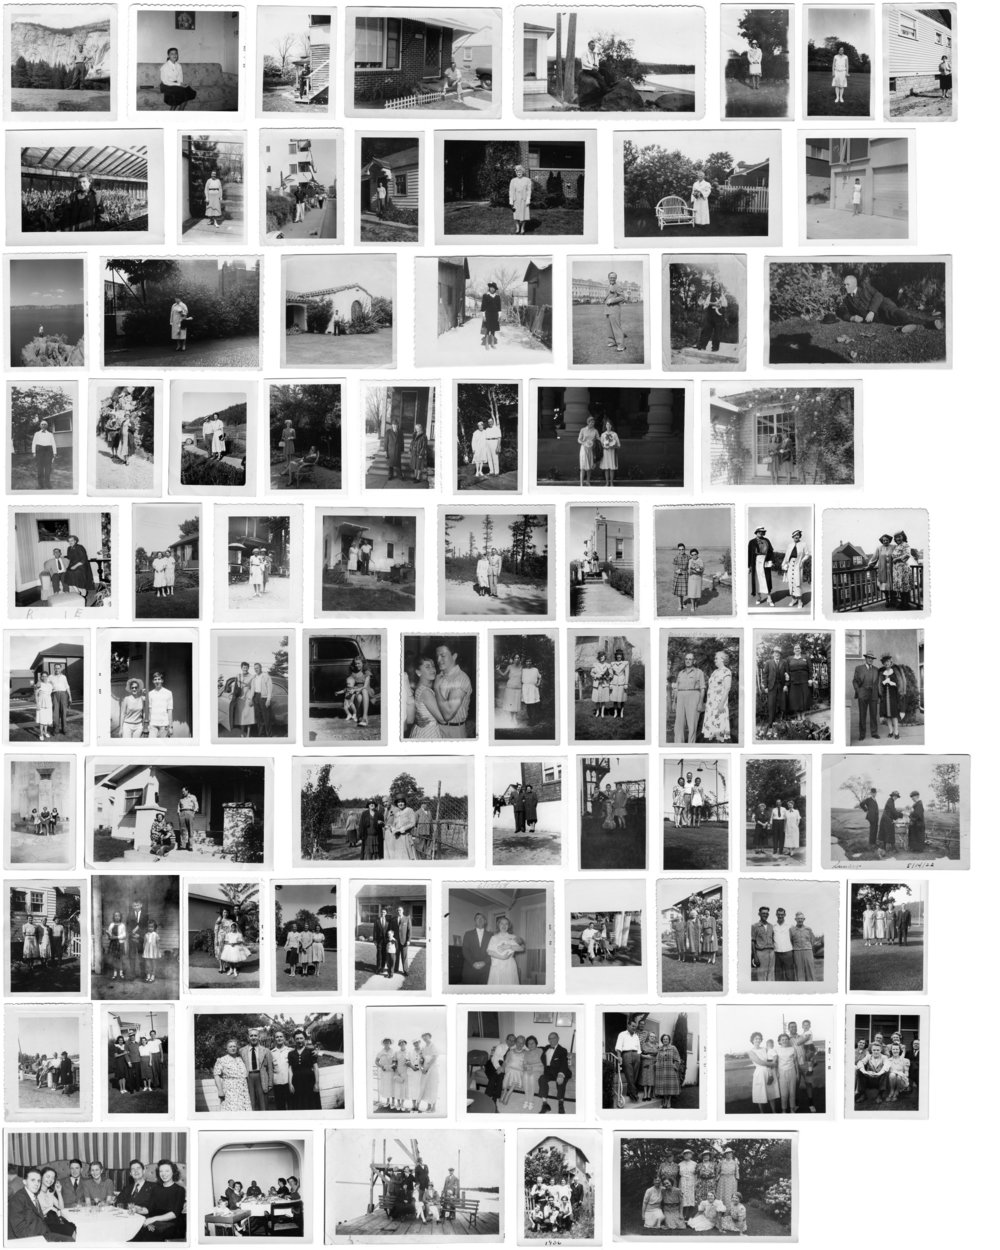 "Normal   0           false   false   false     EN-US   X-NONE   X-NONE                                                                         Example of  non-competitive photography . Montage of anonymous found family photographs from the collection  Look at Me  ( http://look-at-me.tumblr.com ). Thumbnails are displayed in ascending order according to the number of persons in the photographs starting from upper left corner. Vast majority of these images have no title and date. For this montage, I selected images that were tagged ""black and white"" assuming that the largest part of such images most likely are from c. the 1950s and no later than the 1960s when color photography became commonplace."